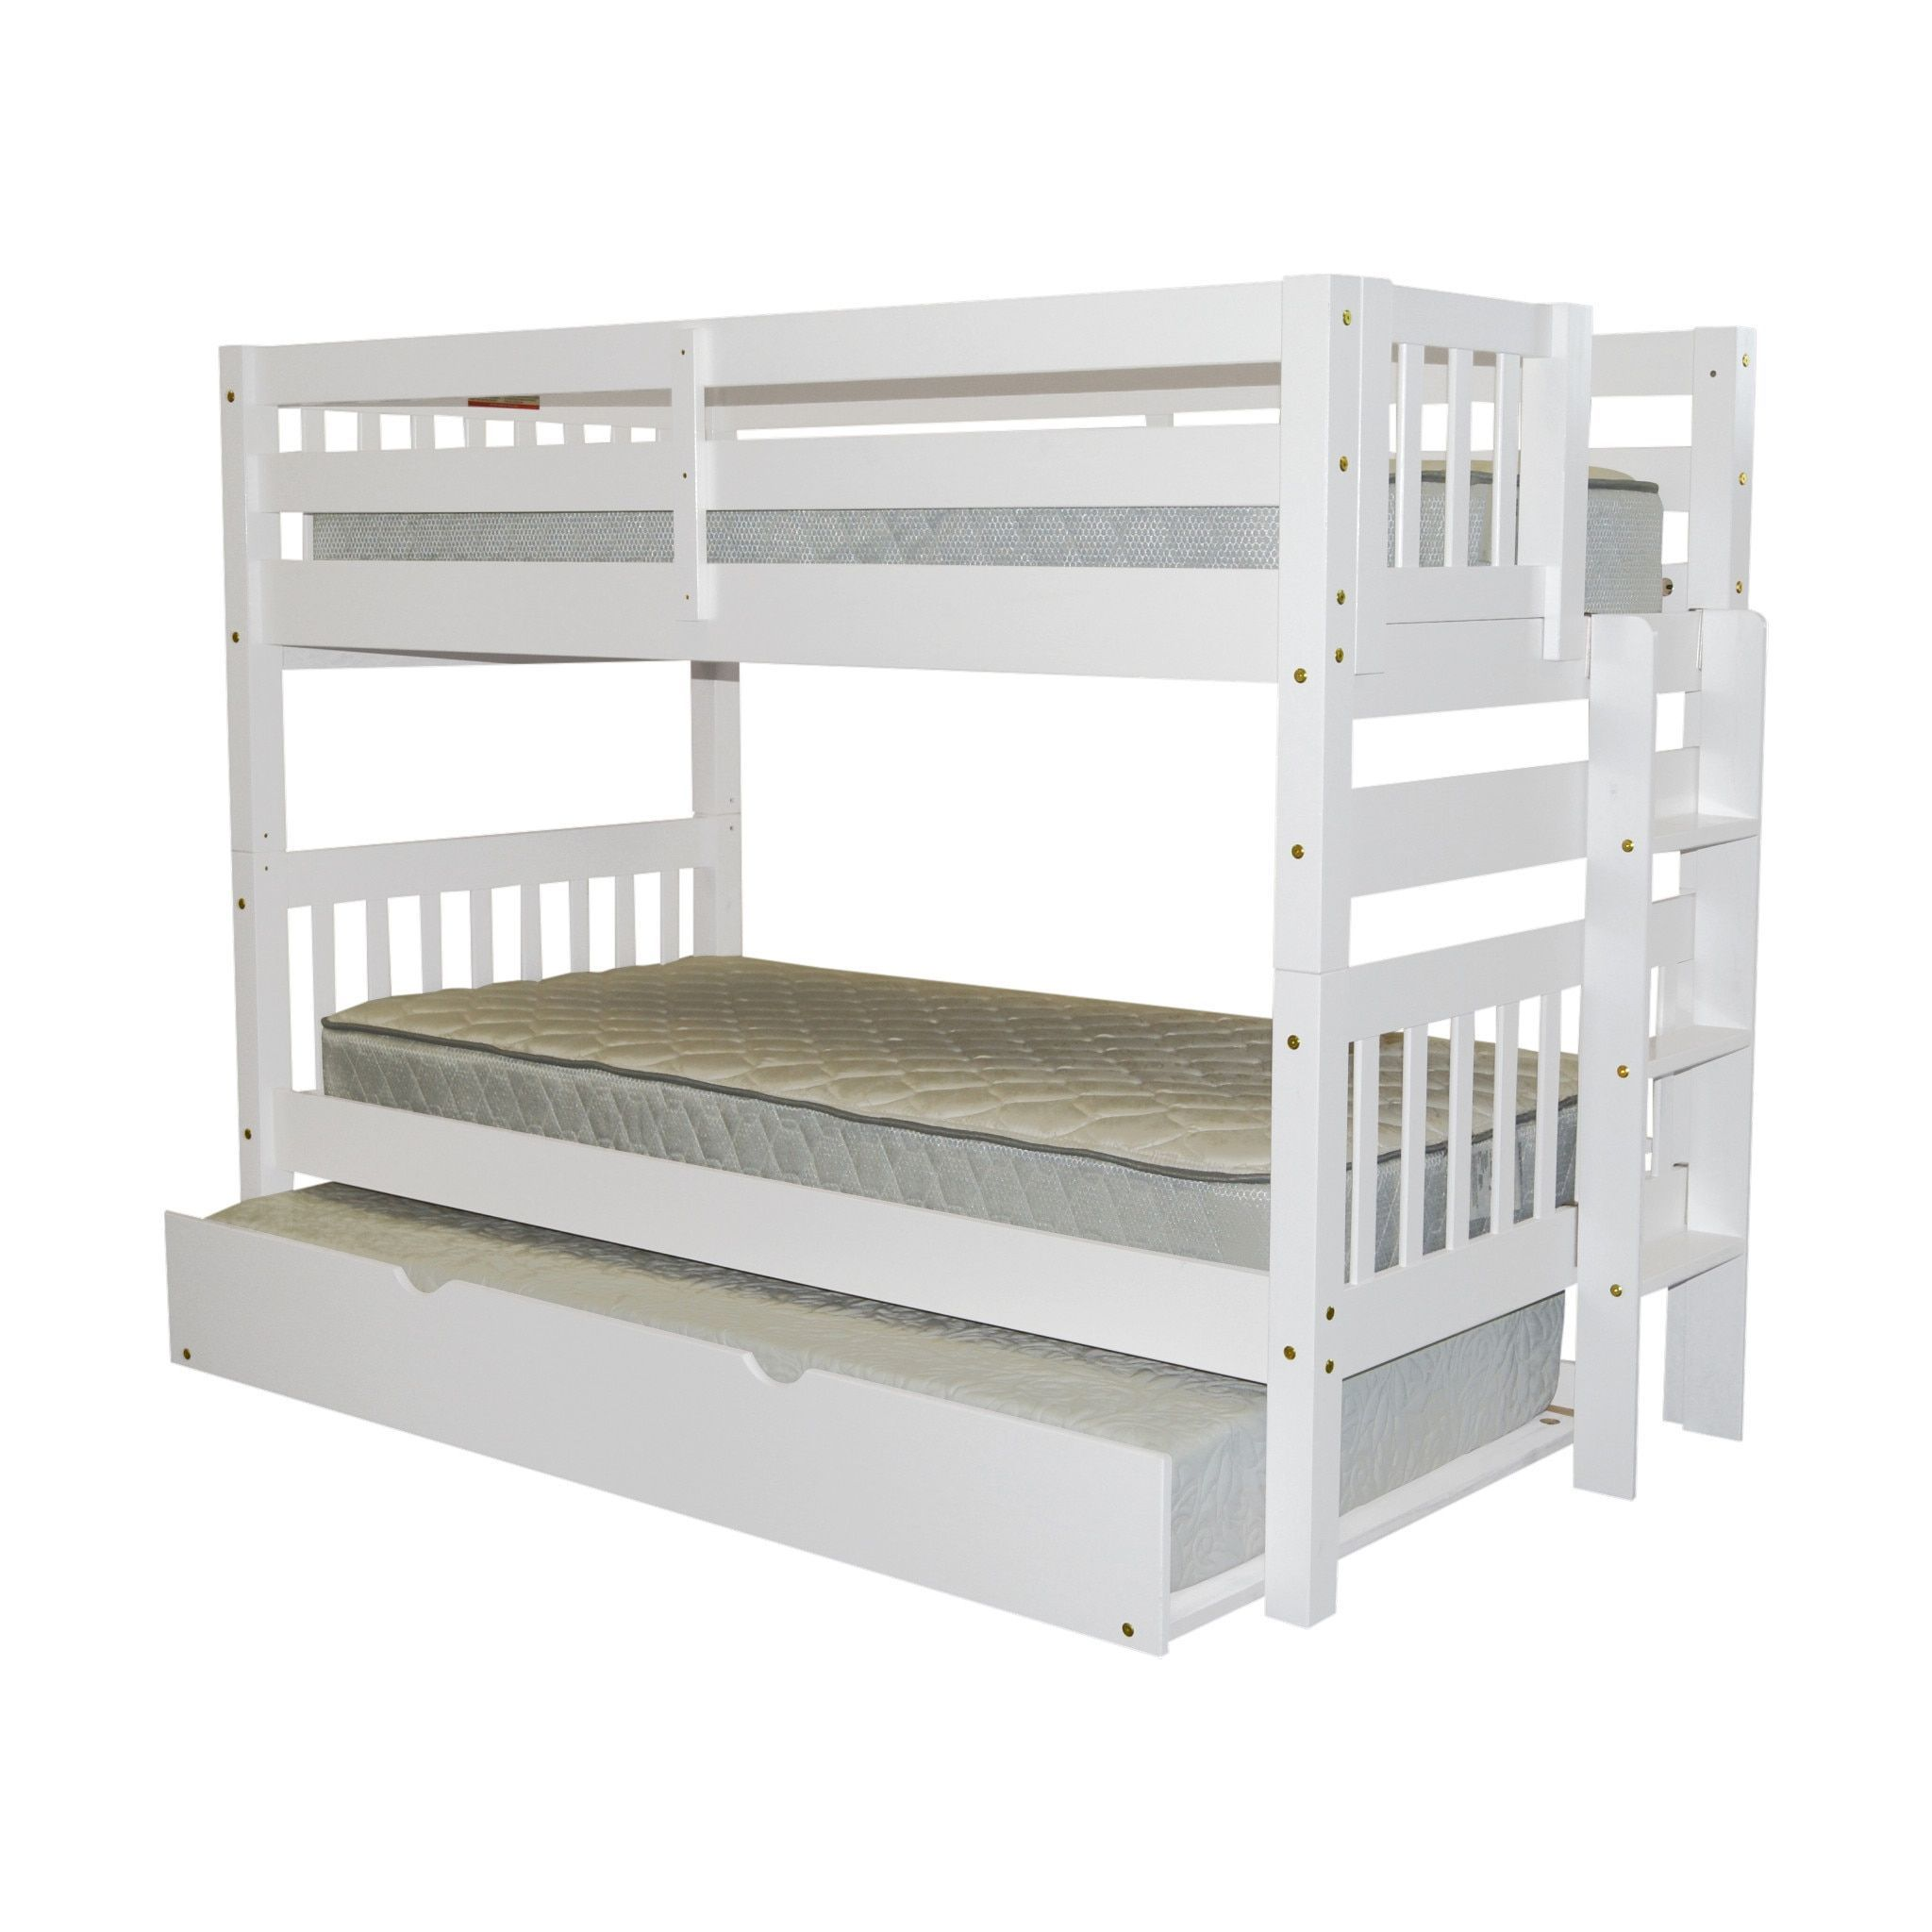 Pine loft bed with desk  Bedz King White Wood TwinoverTwin Bunk Bed with End Ladder and